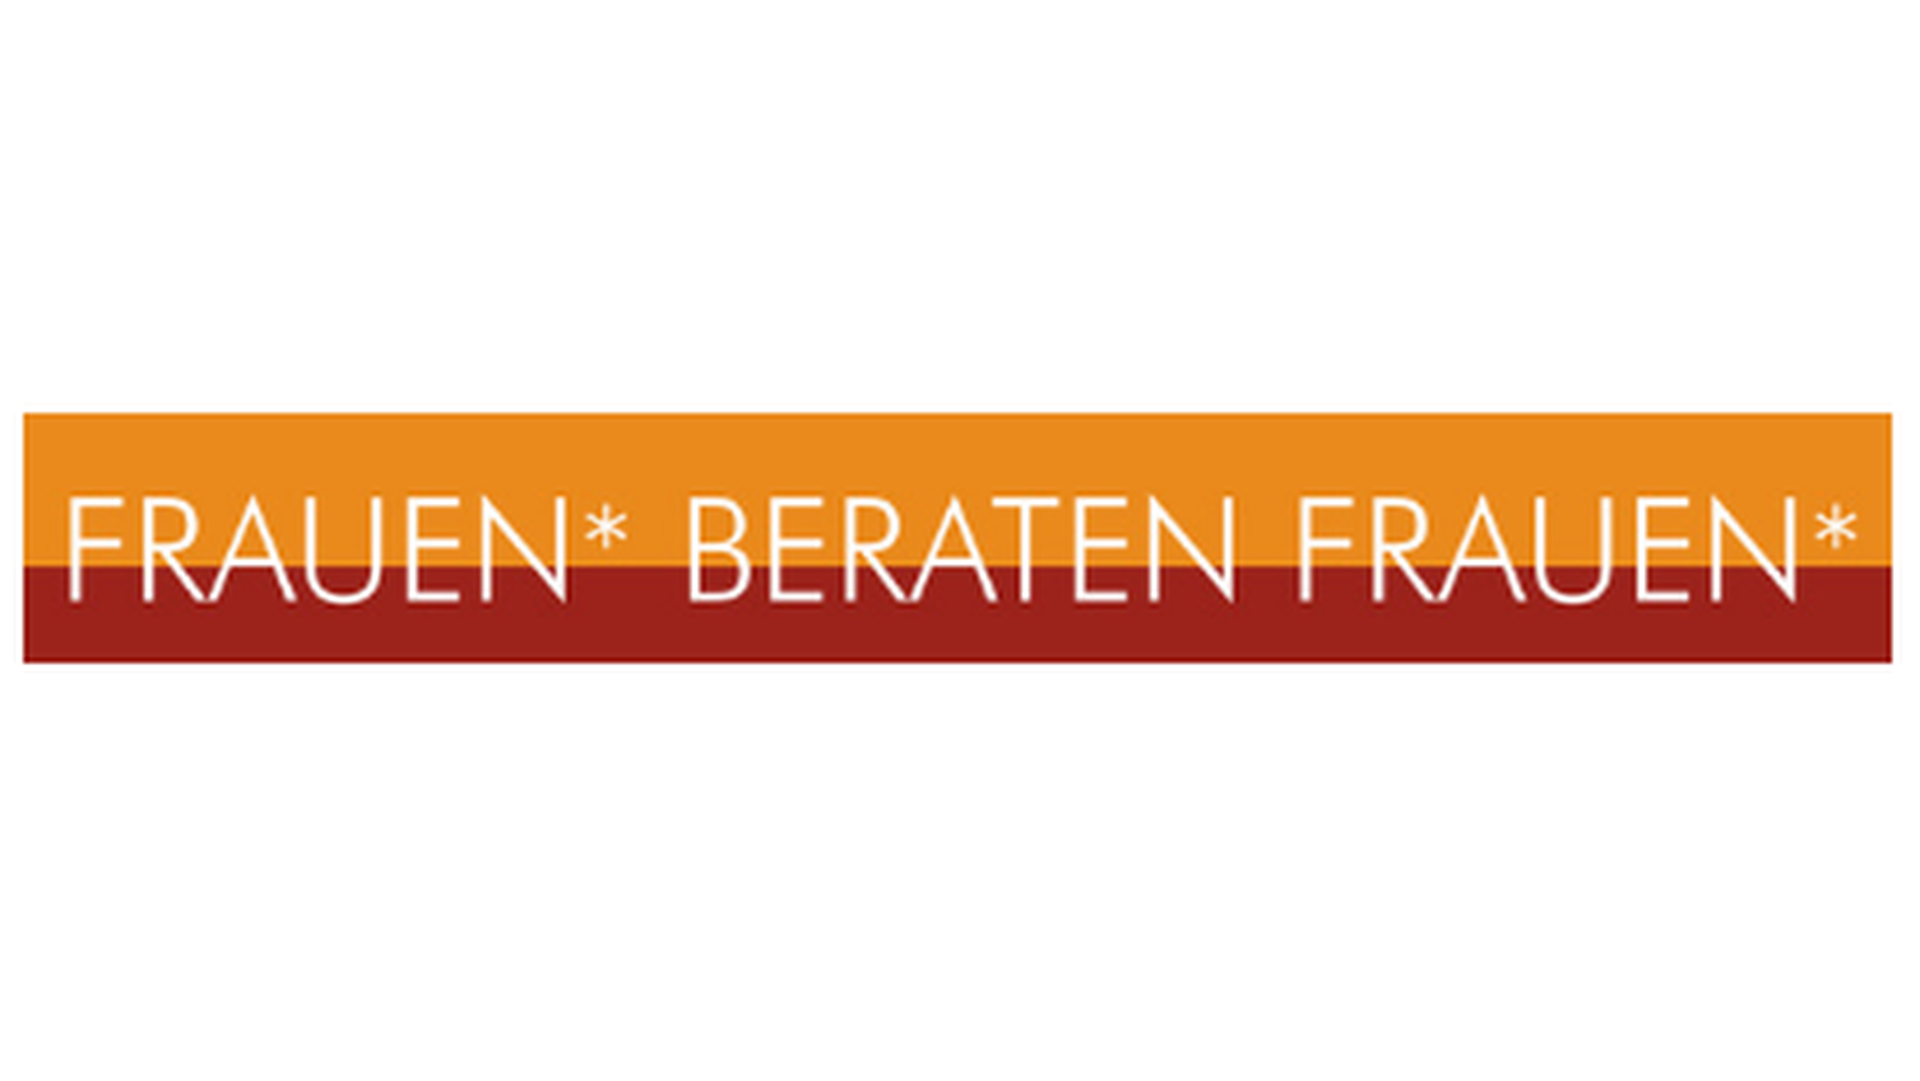 Logo-Frauen-beraten-Frauen(C)Frauen-beraten-Frauen.png